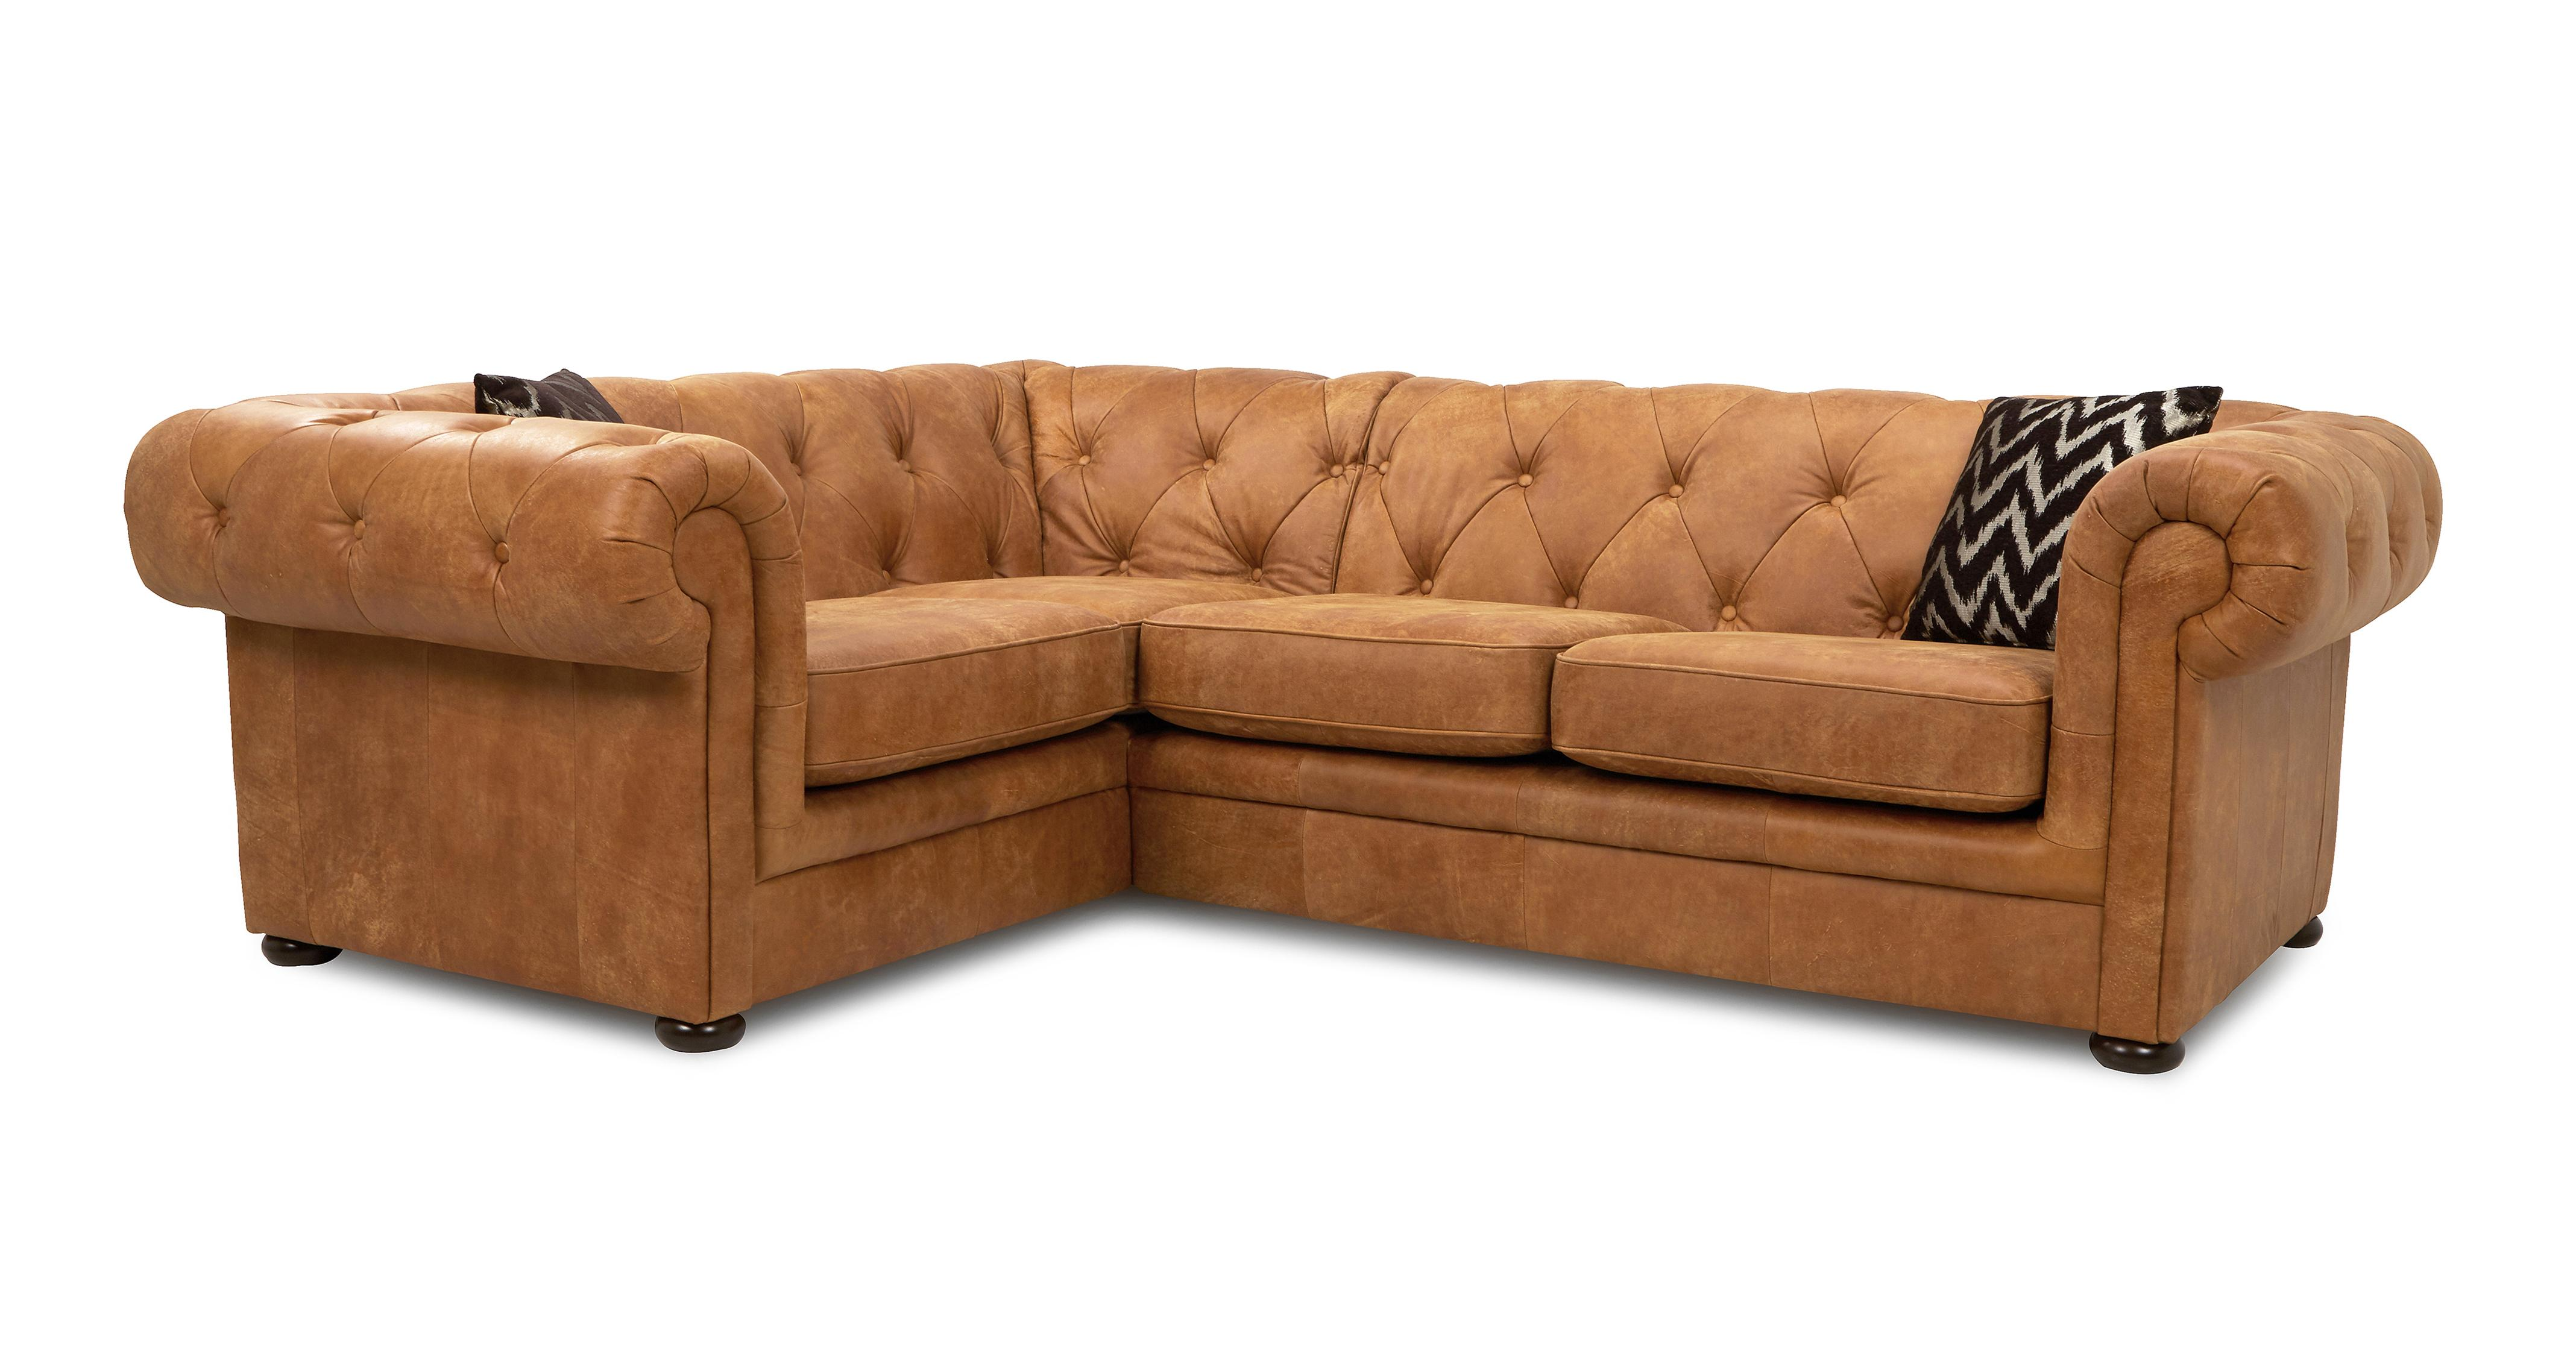 Quick View Right Hand Facing Arm 2 Seater Corner Sofa Saddle